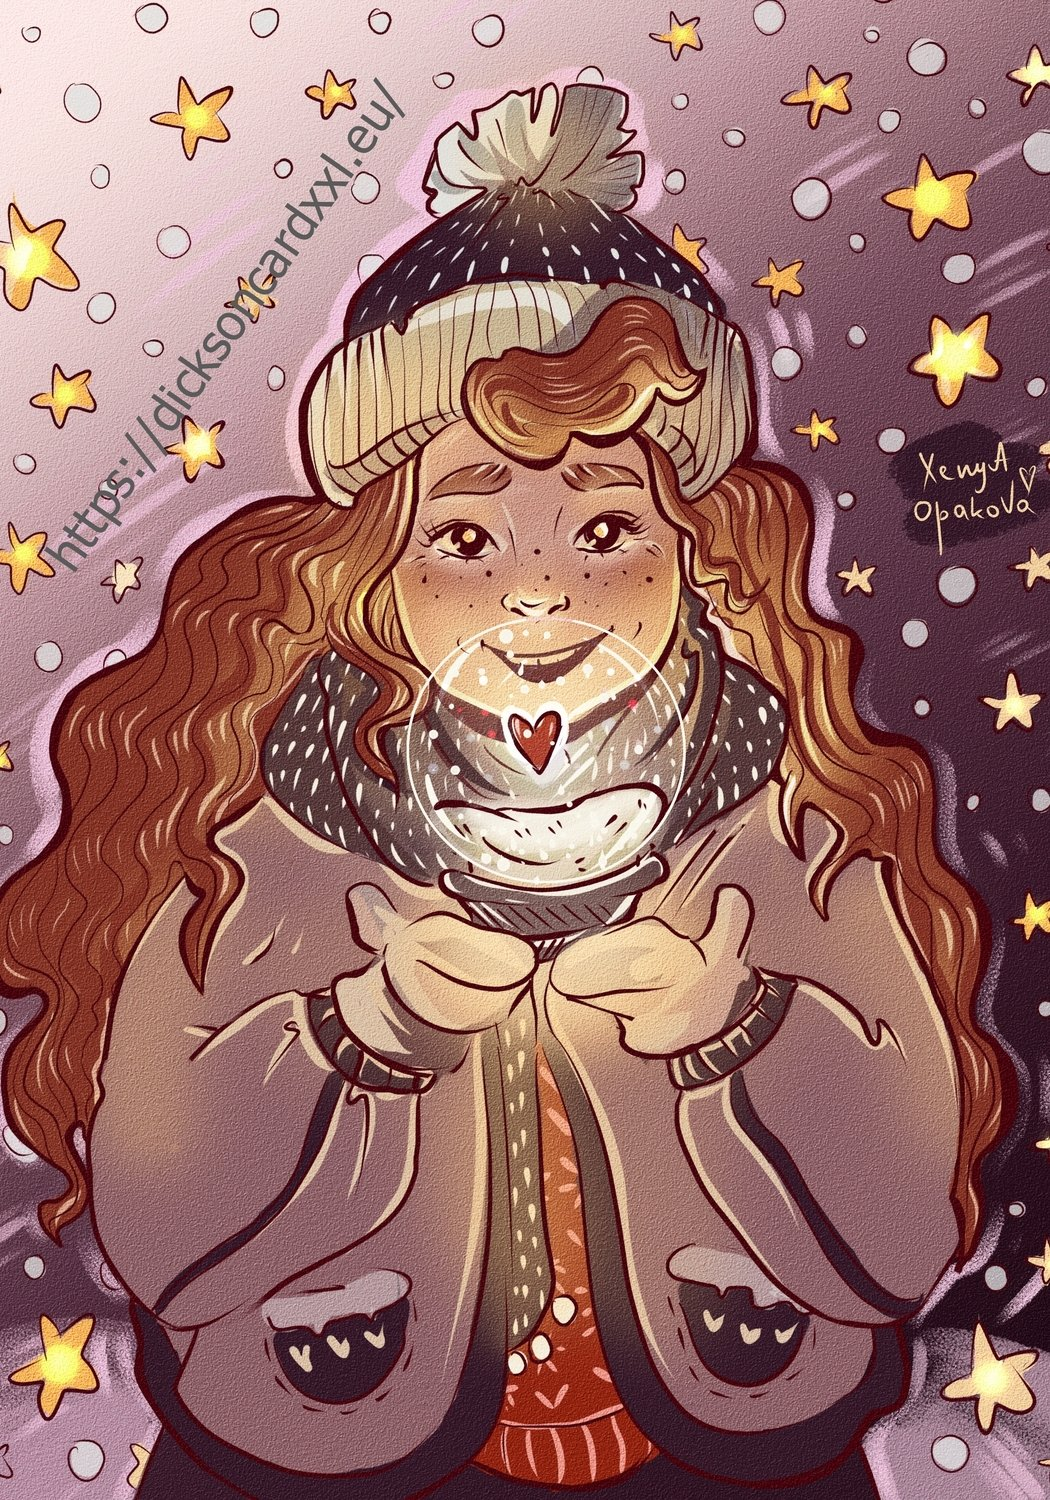 Girl with a glass ball © Xenia Opakova